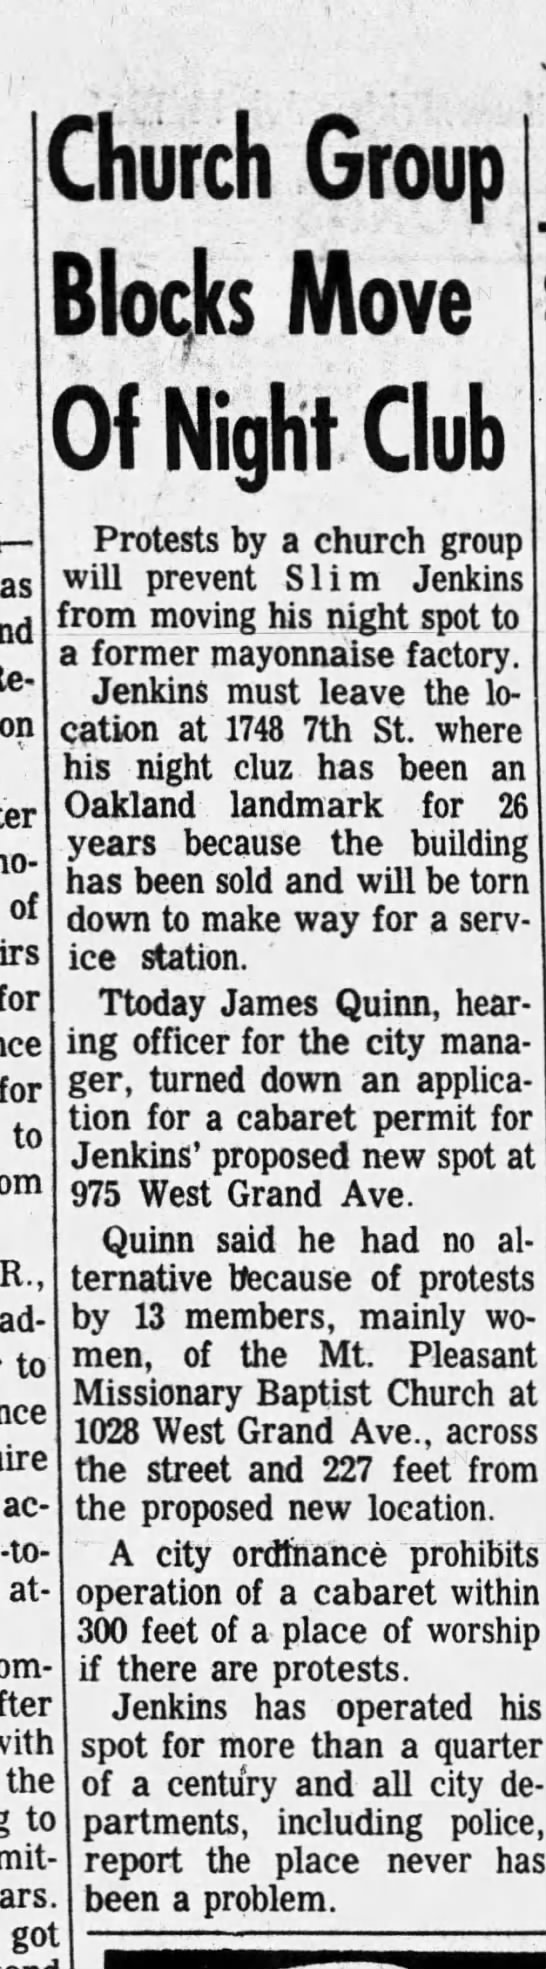 Church Group Blocks Move Of Night Club- Slim Jenkins Jul 14 1961 -